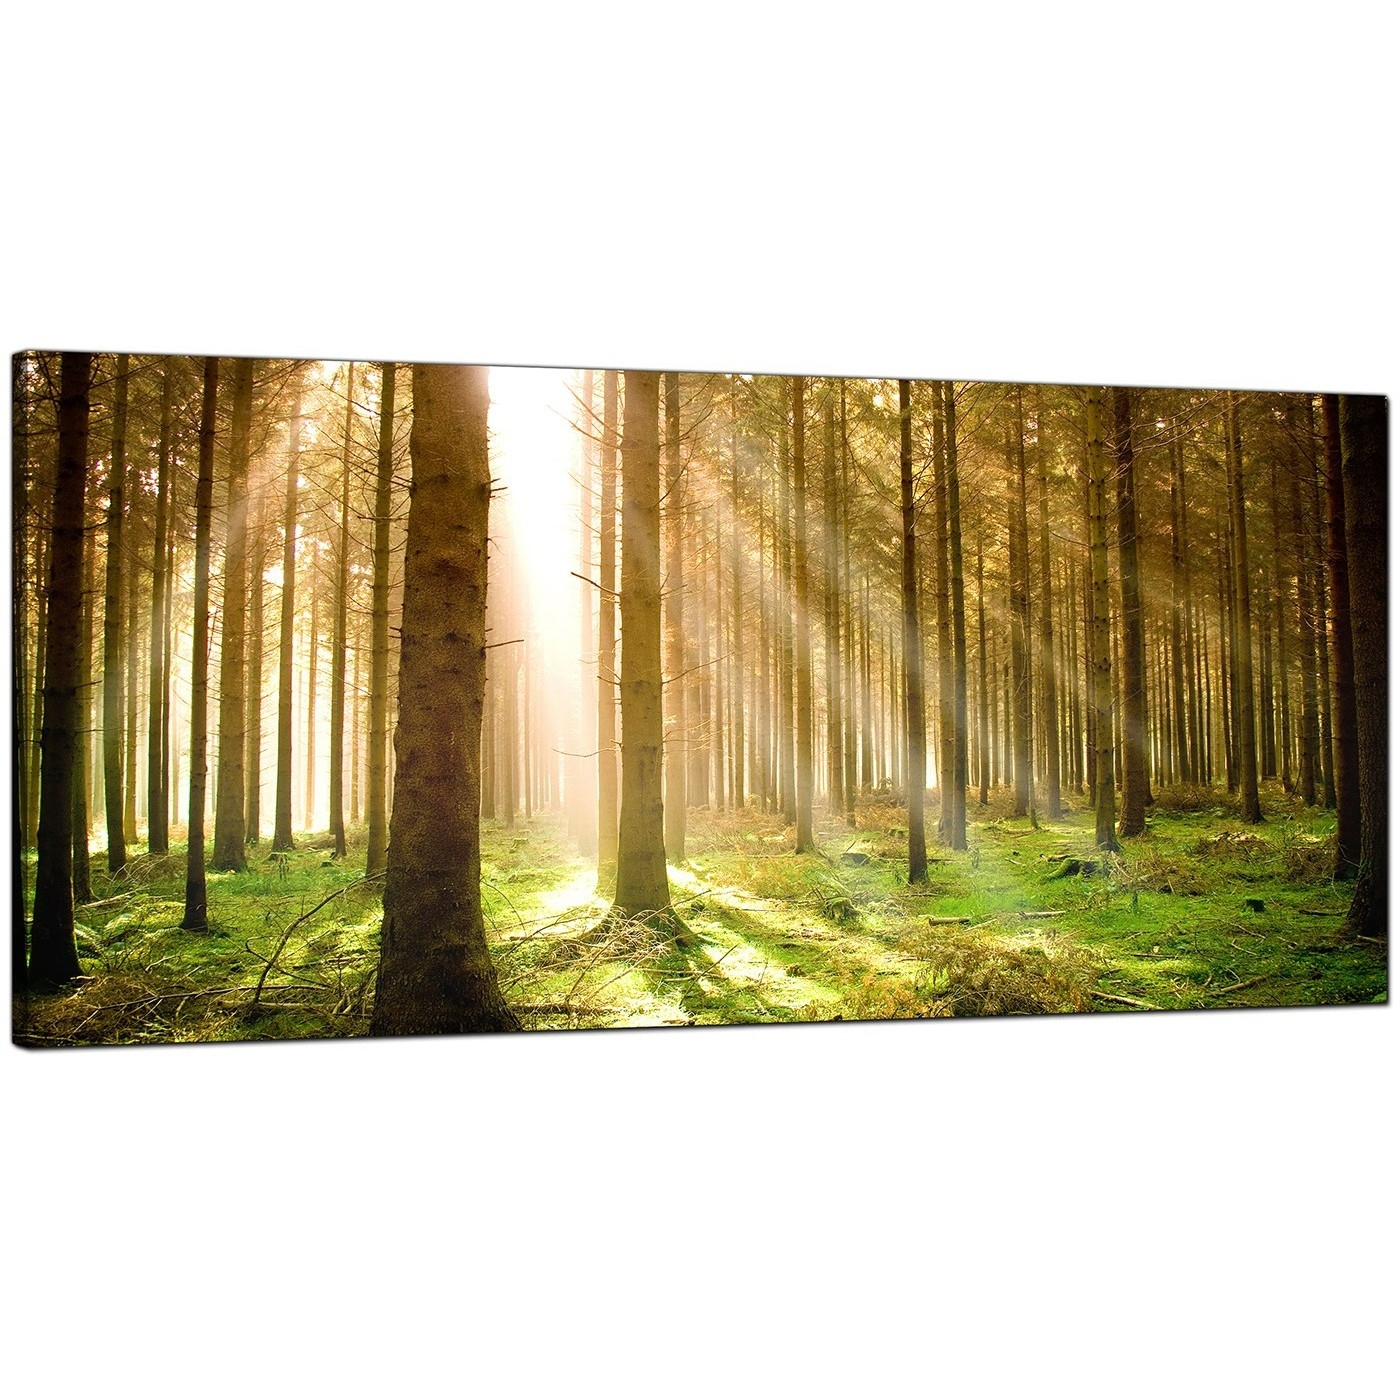 Modern Canvas Prints Of Forest Trees For Your Dining Room intended for Modern Canvas Wall Art (Image 16 of 20)